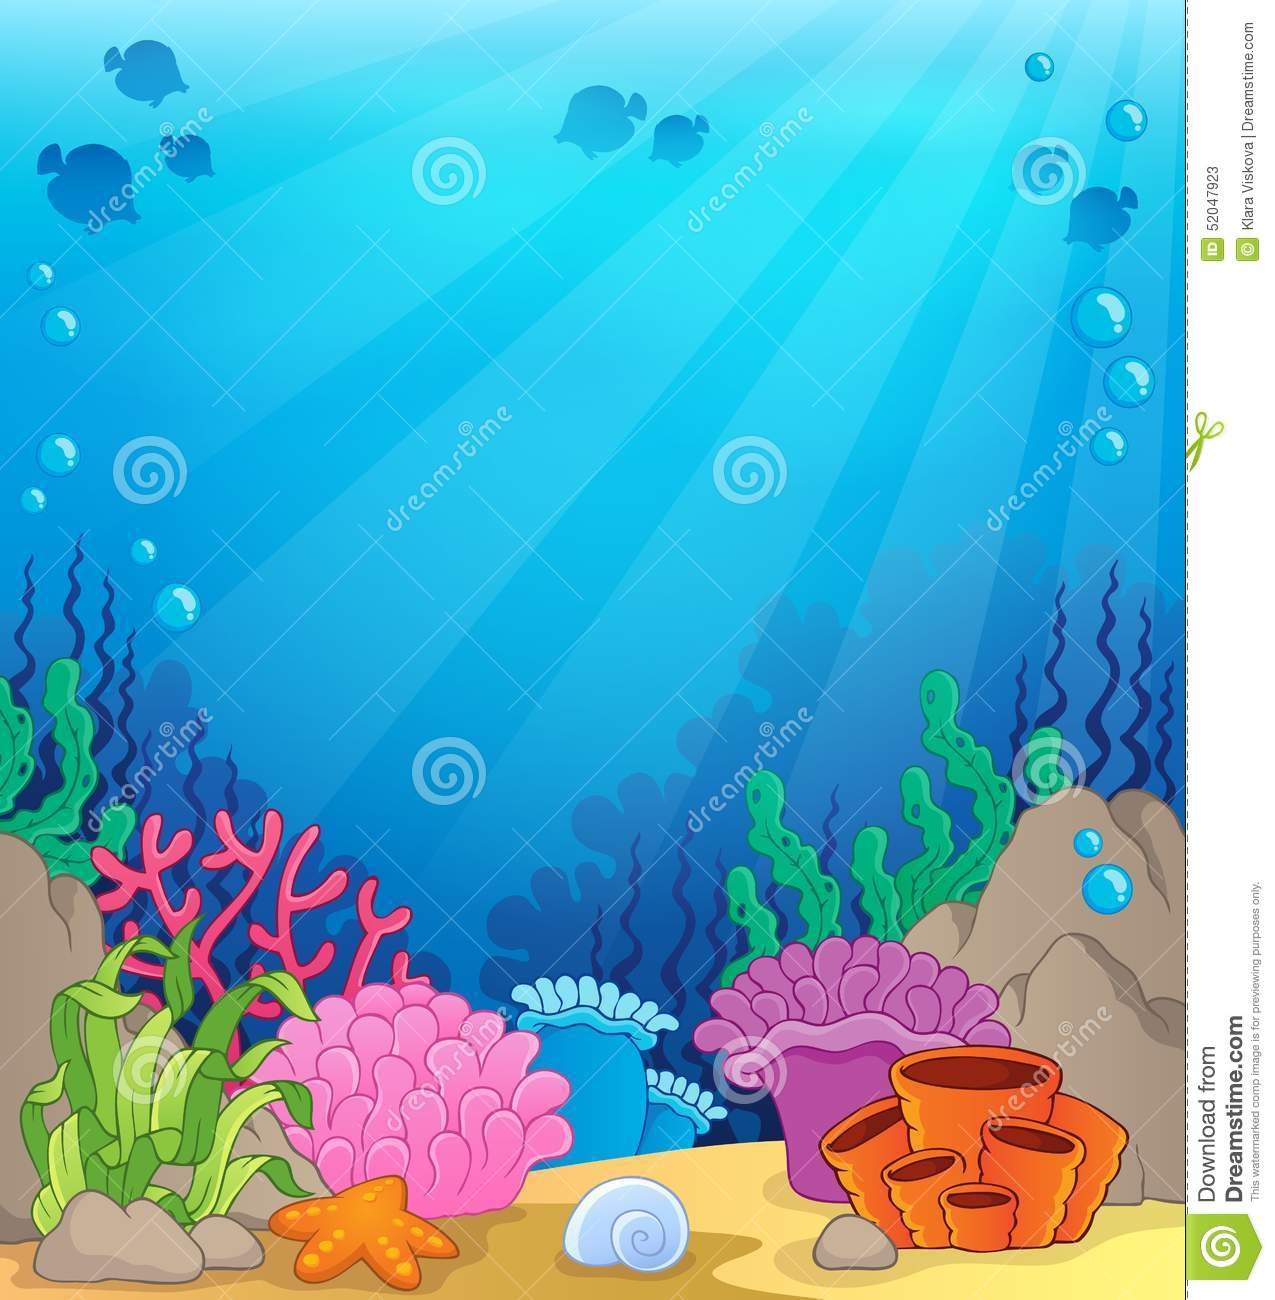 Background clipart underwater.  collection of high